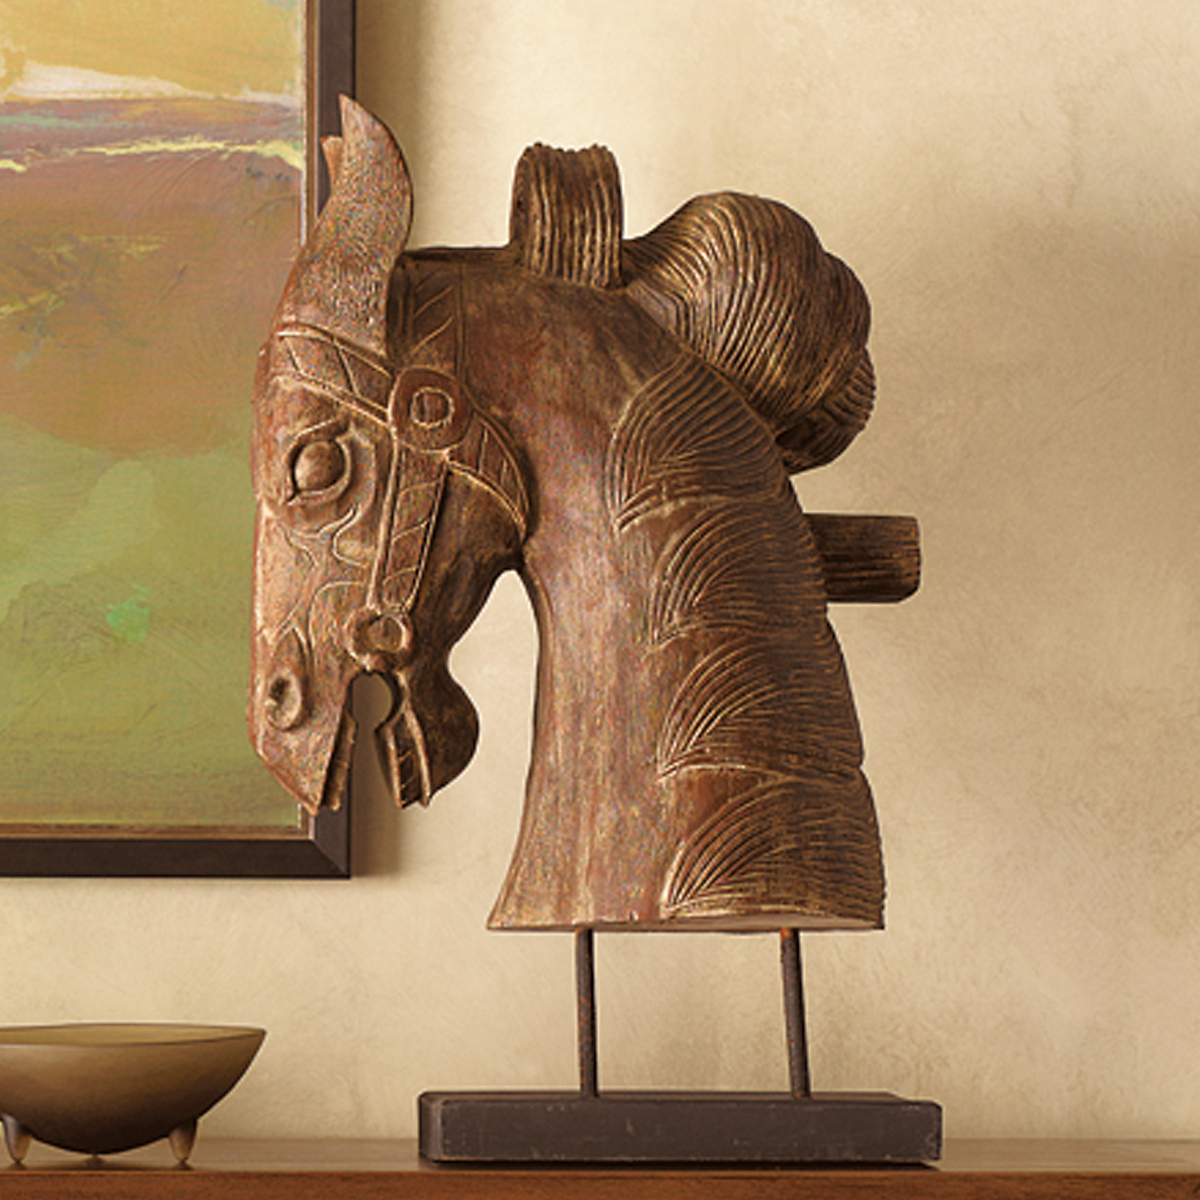 Wood-Carved Horse Head